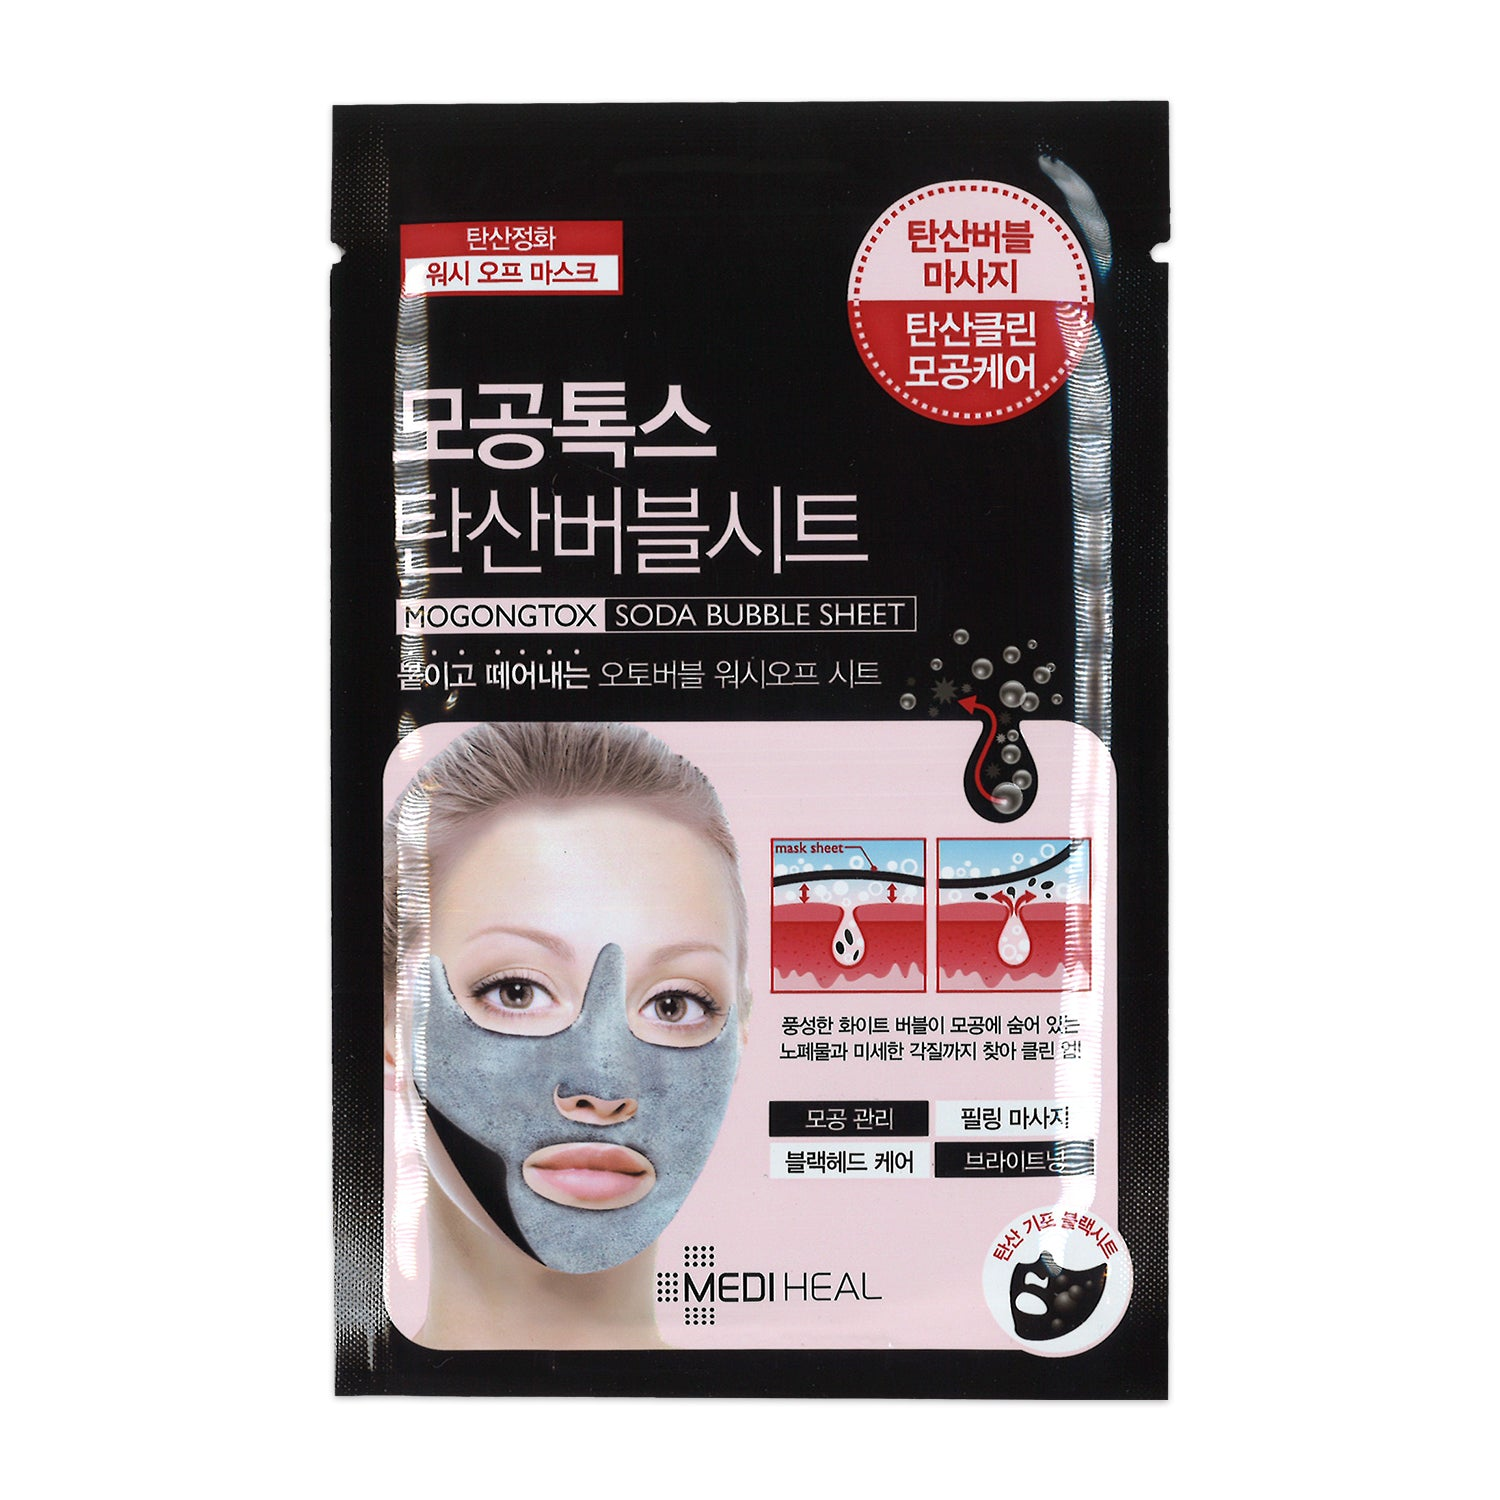 [Mediheal] Mogongtox Soda Bubble Sheet Mask